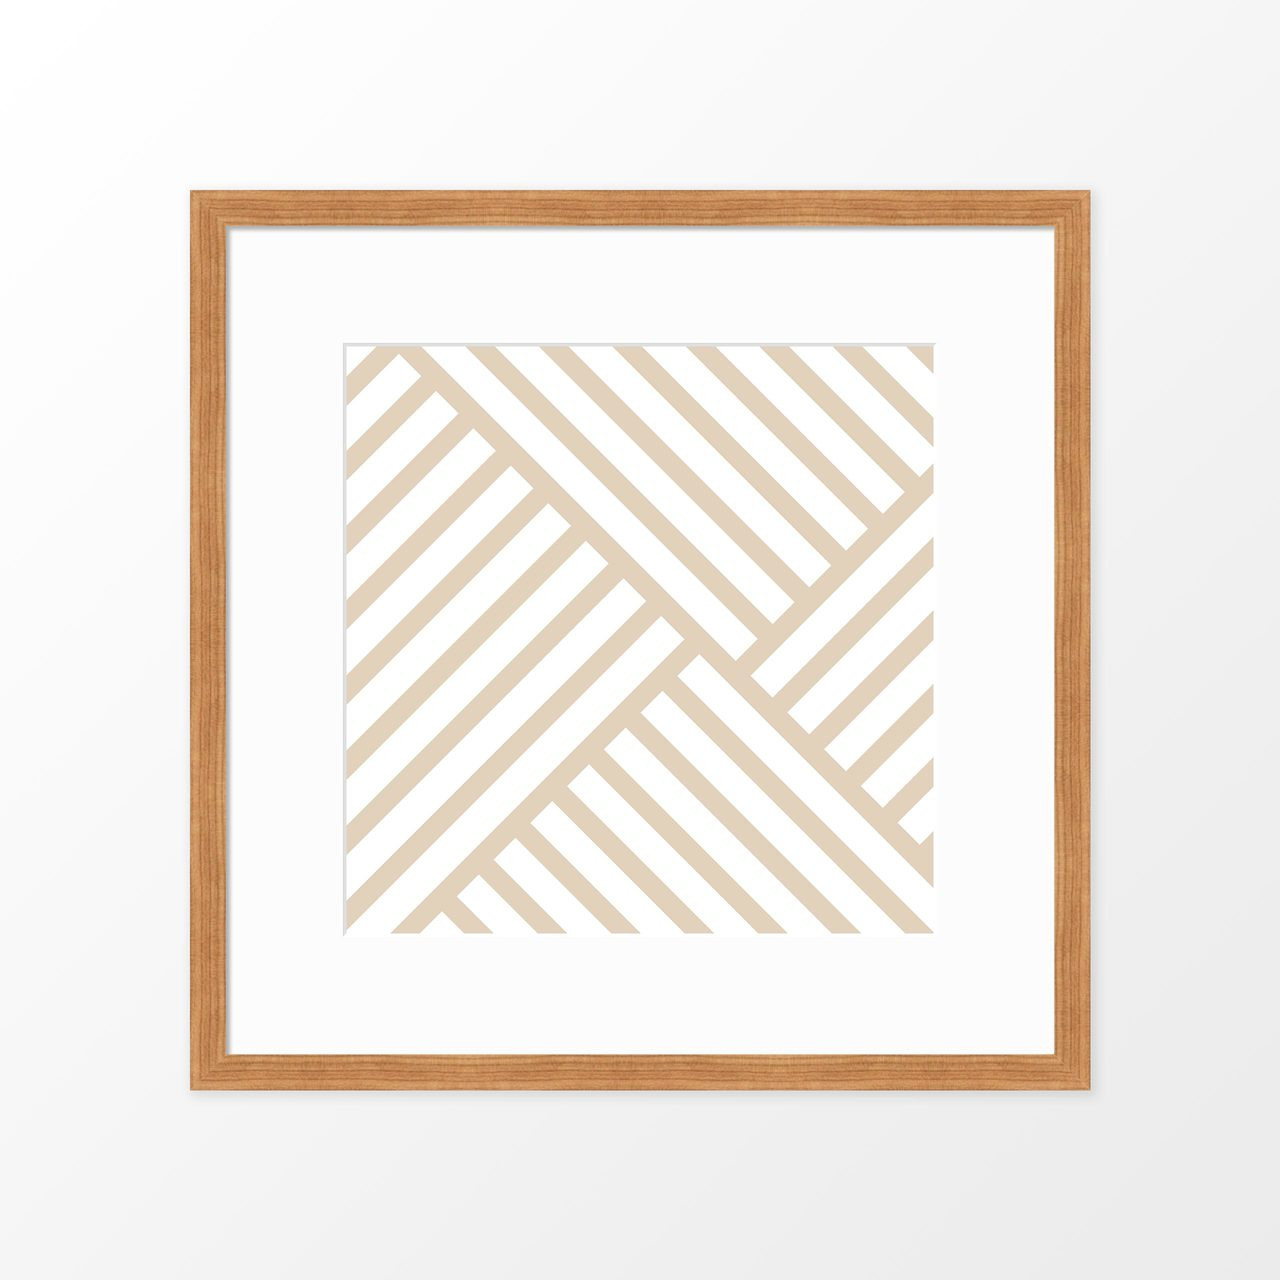 'Lines on Lines II' Modern Geometric Art Poster from The Printed Home (Printable)